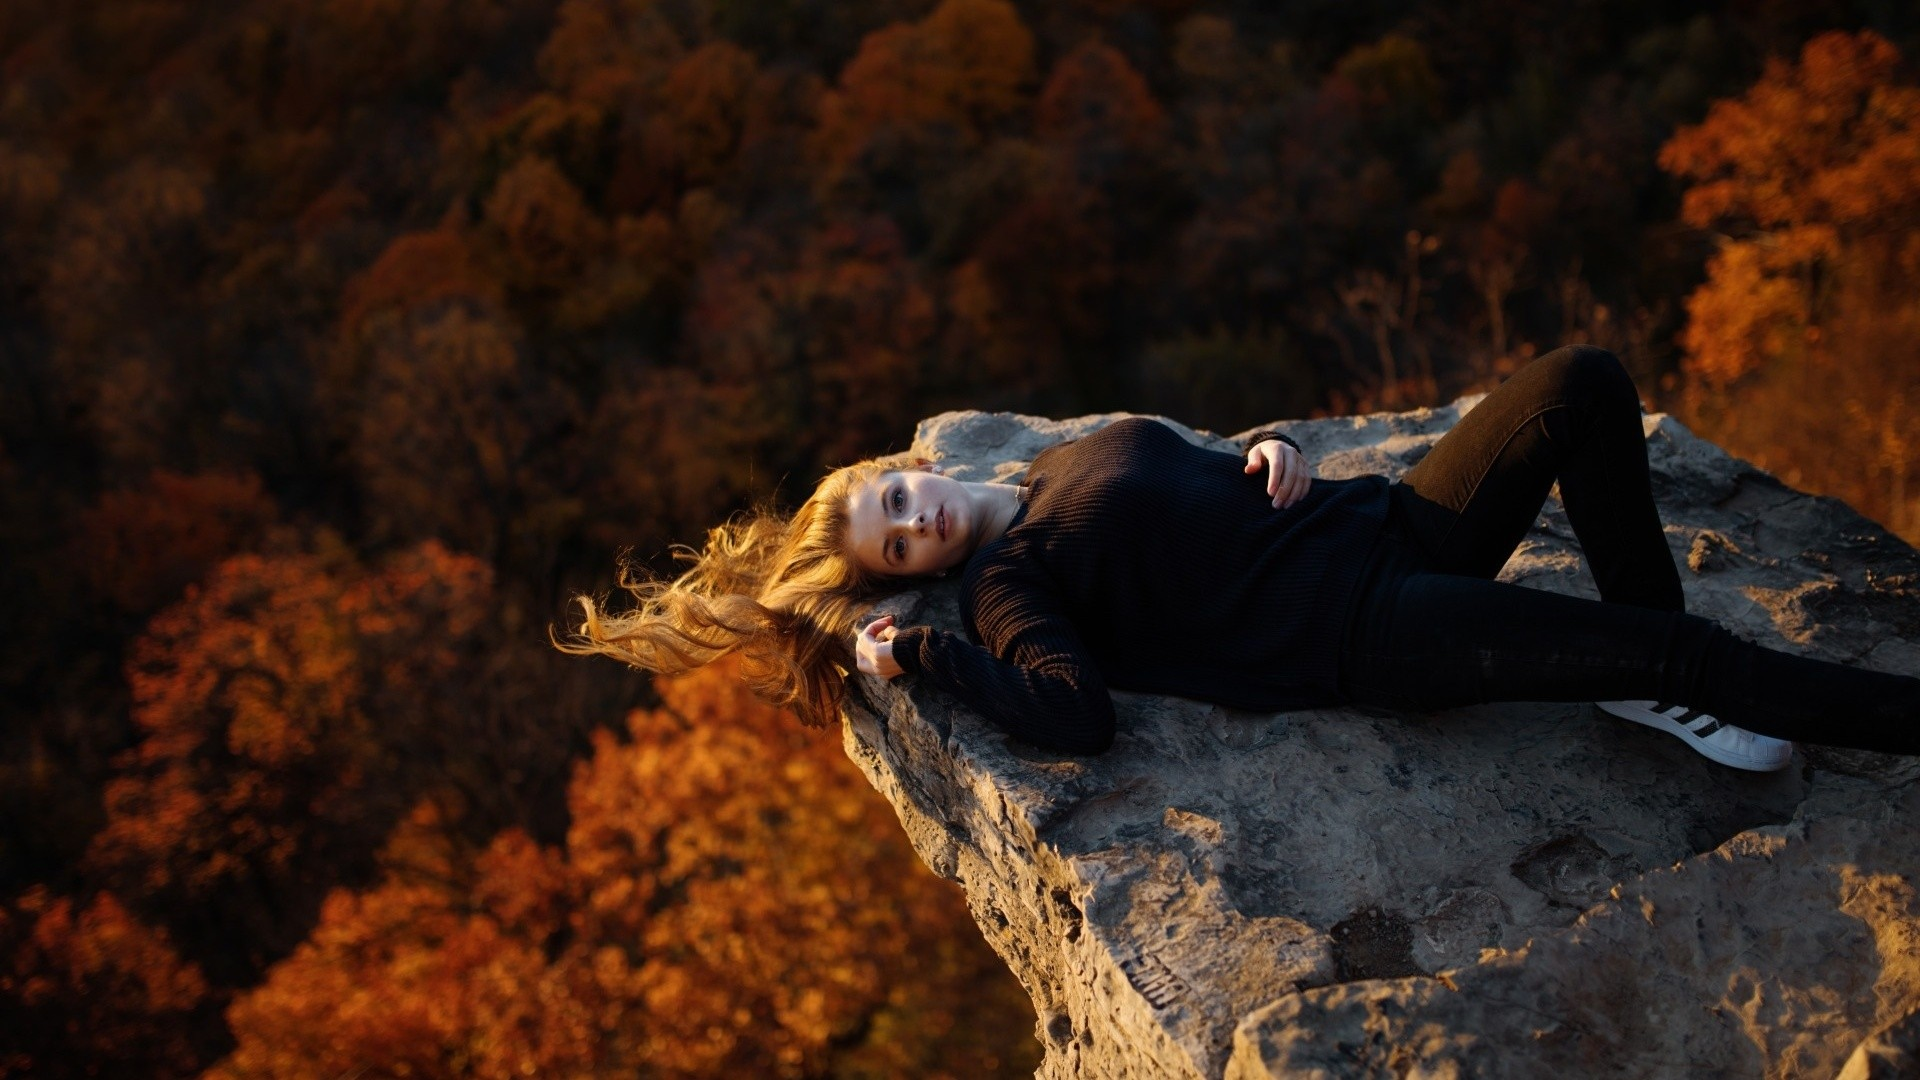 People 1920x1080 women model blonde long hair women outdoors nature trees lying on back looking at viewer black clothing open mouth rock forest windy sneakers Adidas skinny jeans fall blue eyes black sweater black pants hair hanging down